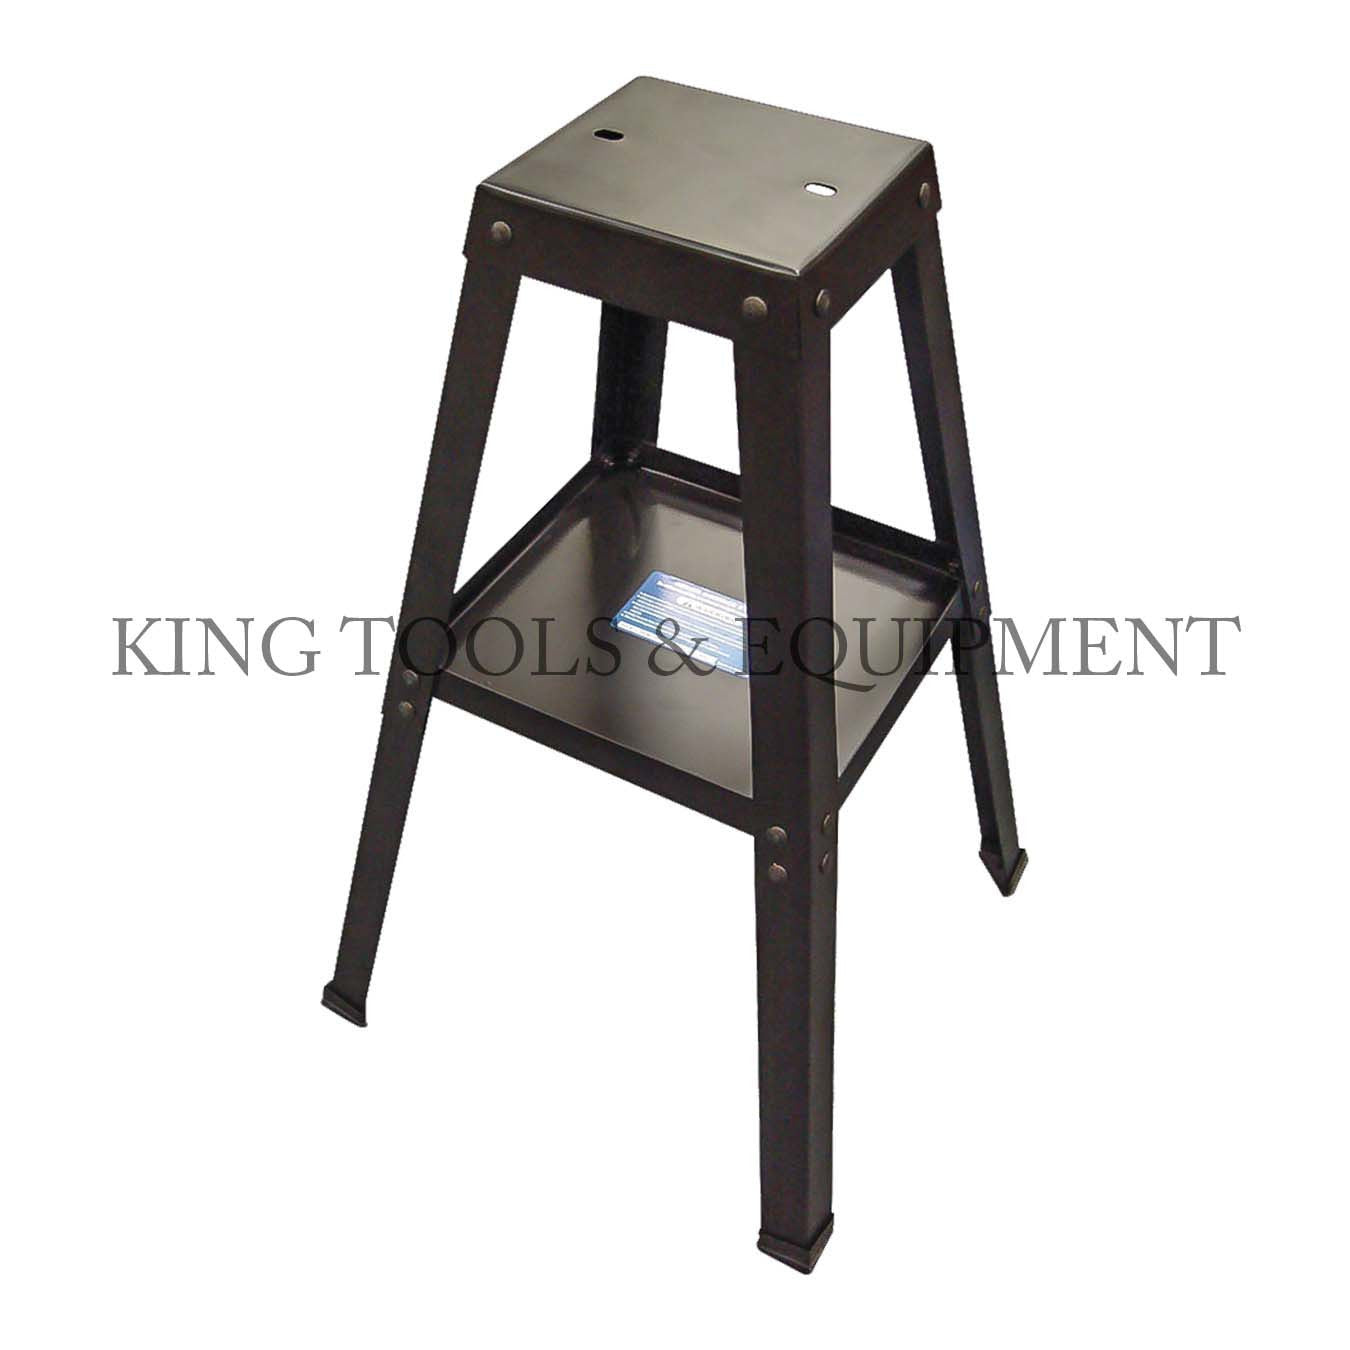 Surprising 32 Stand For Bench Grinder 1033 0 King Tools Equipment Pdpeps Interior Chair Design Pdpepsorg